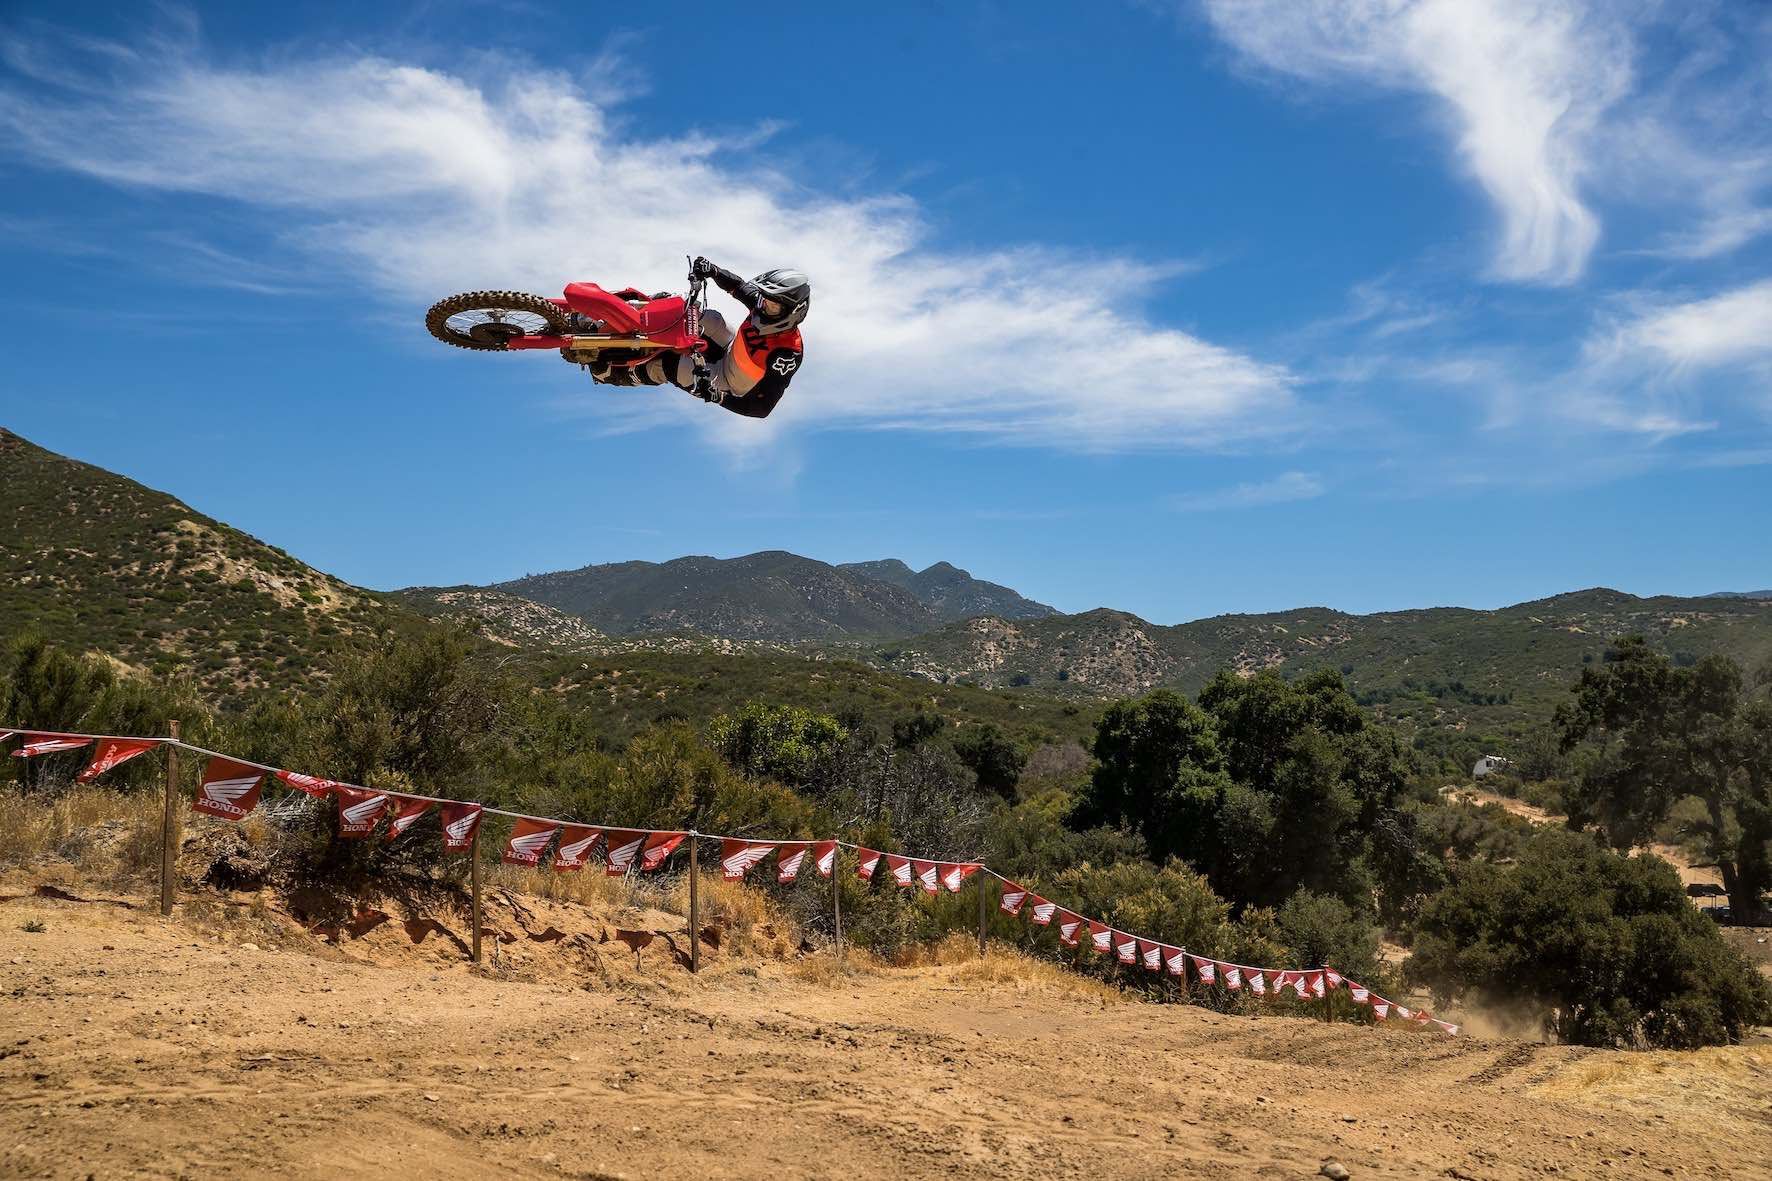 Riding the 2021 Honda CRF450R